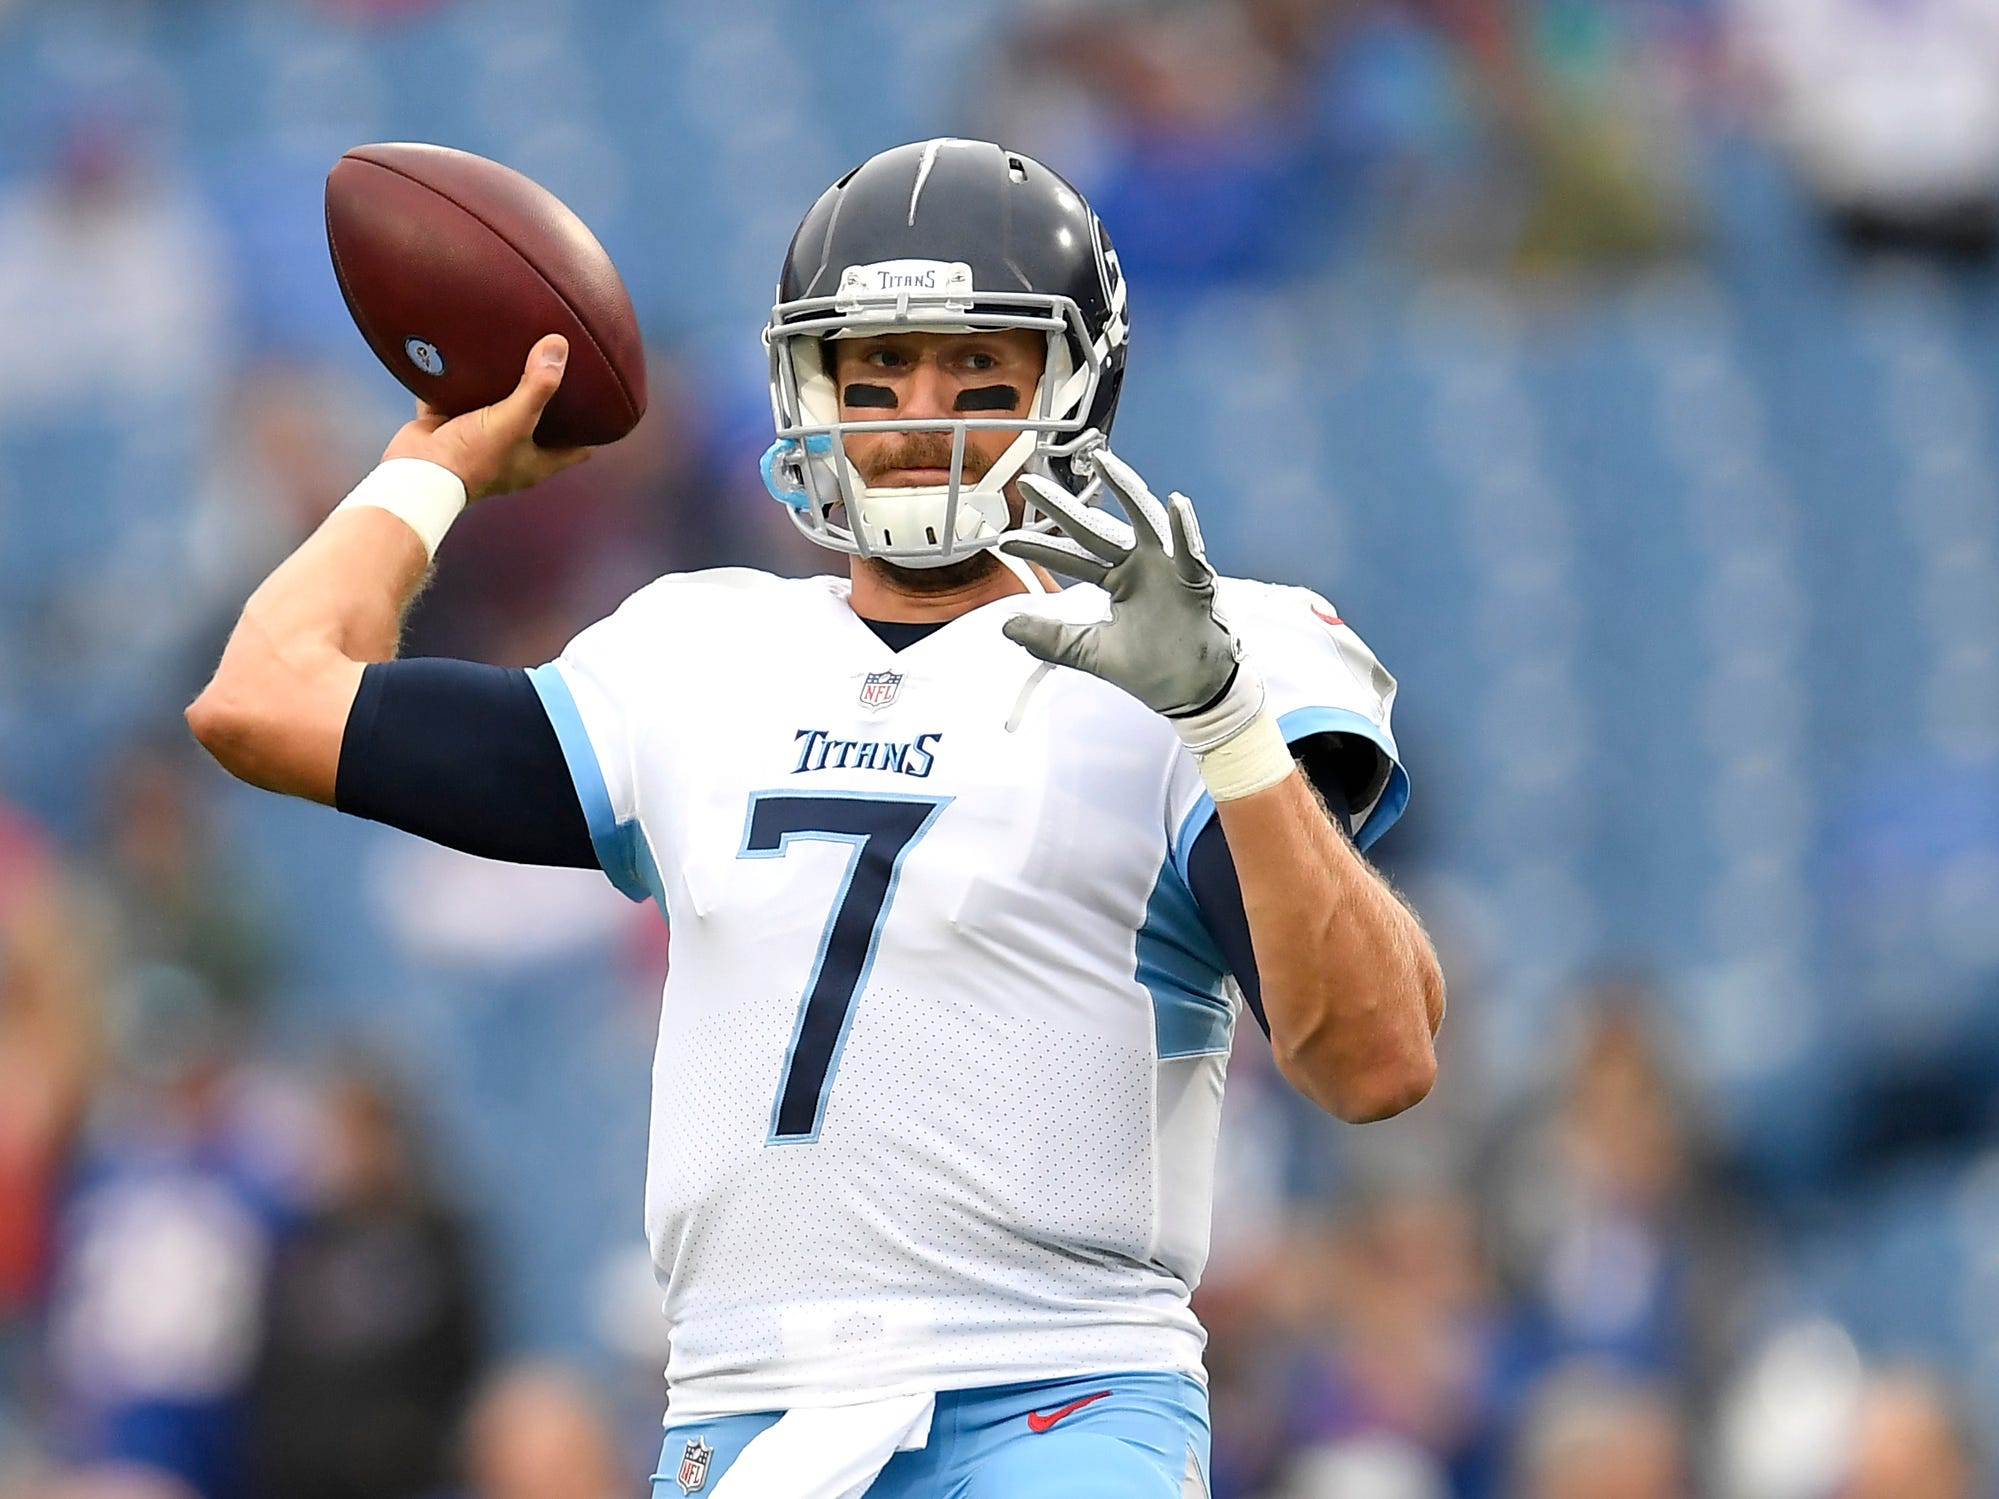 Tennessee Titans quarterback Blaine Gabbert works out prior to an NFL football game against the Buffalo Bills, Sunday, Oct. 7, 2018, in Orchard Park, N.Y. (AP Photo/Adrian Kraus)